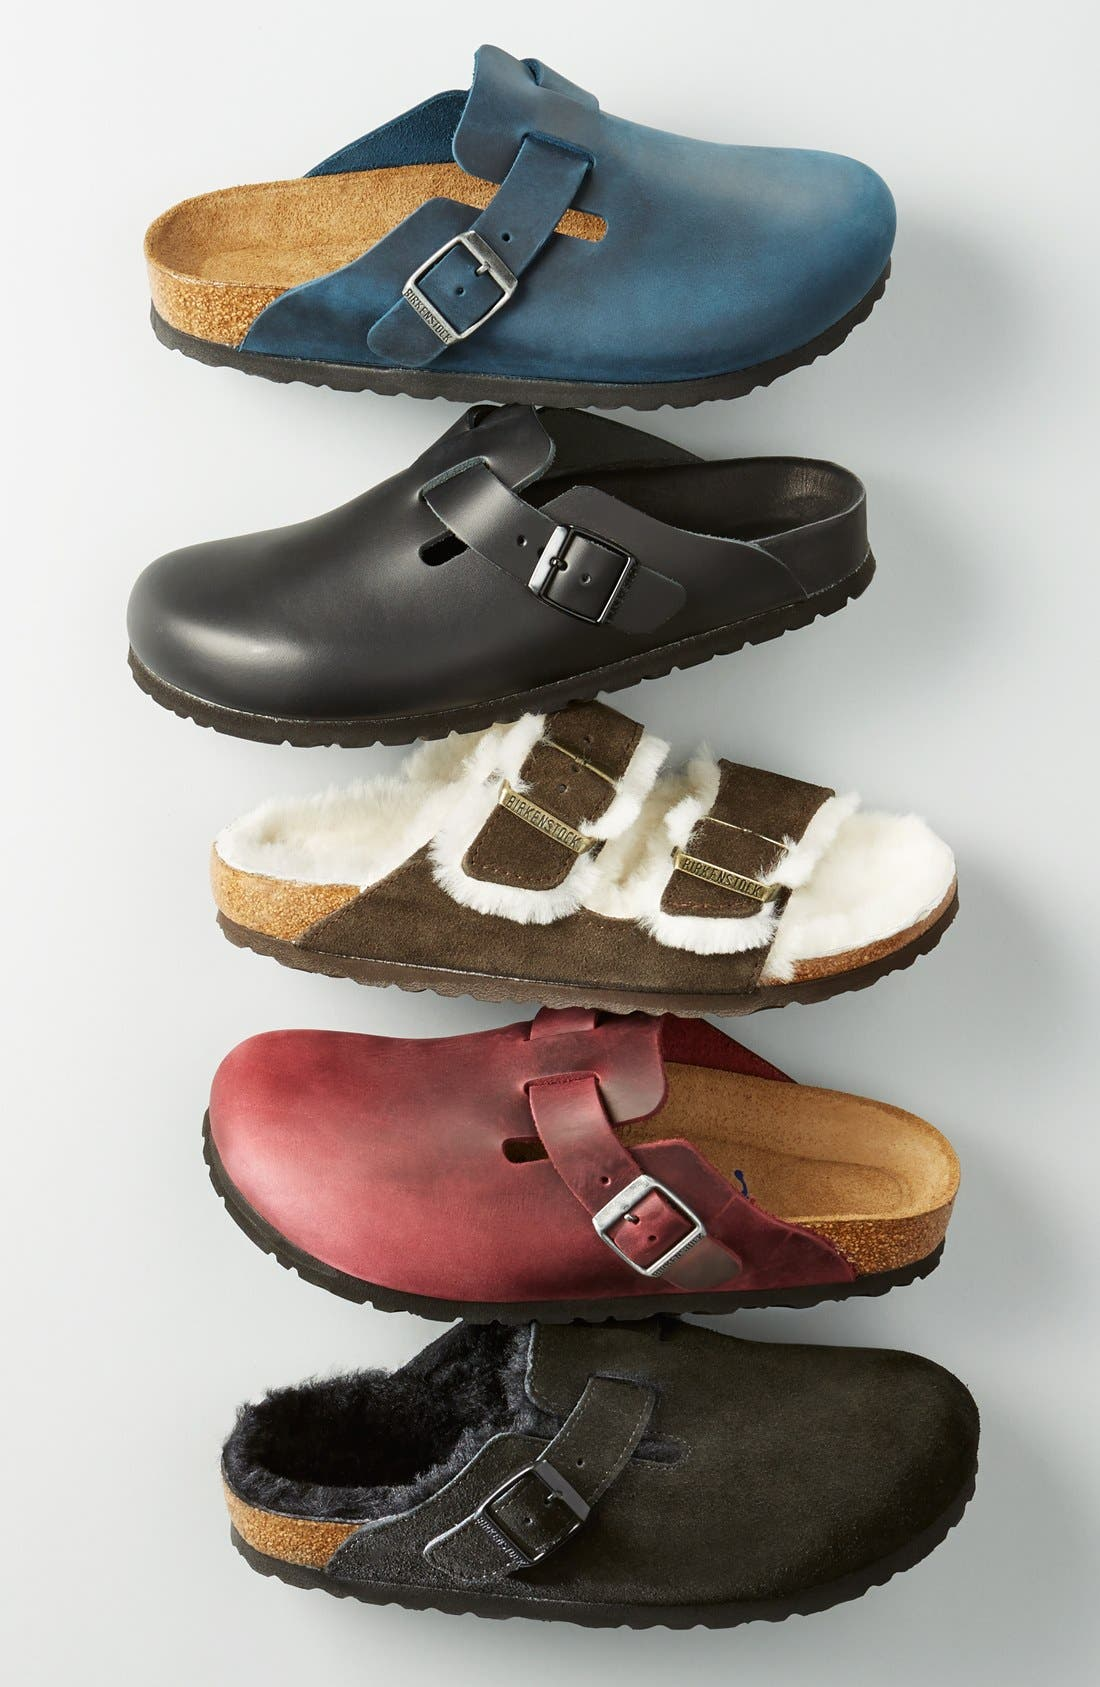 'Boston' Genuine Shearling Lined Clog,                             Alternate thumbnail 8, color,                             FOREST/ NATURAL SUEDE